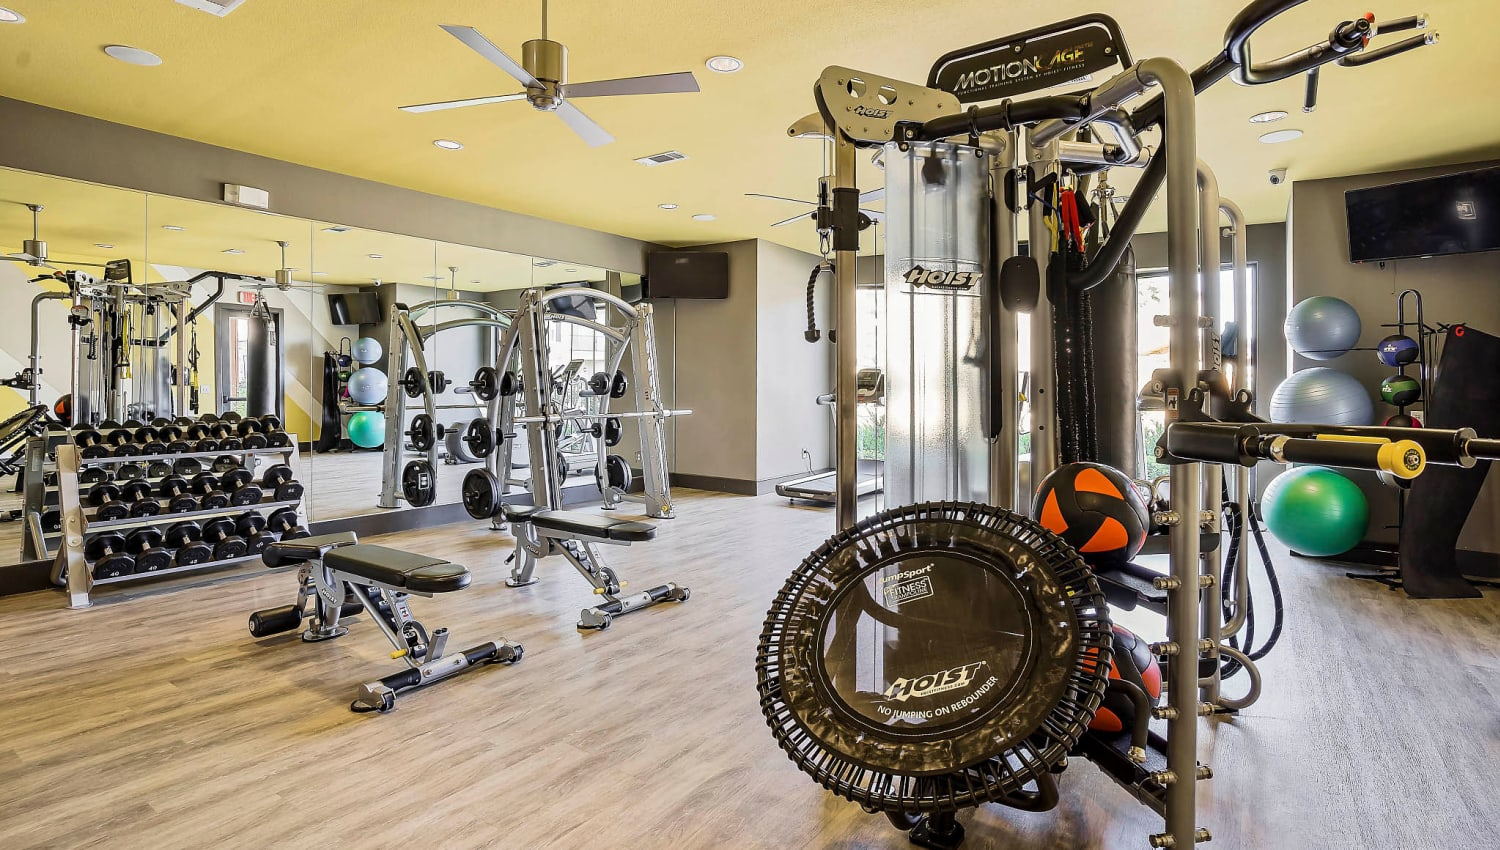 Free weights and exercise machines in the fitness center at Sundance Creek in Midland, Texas